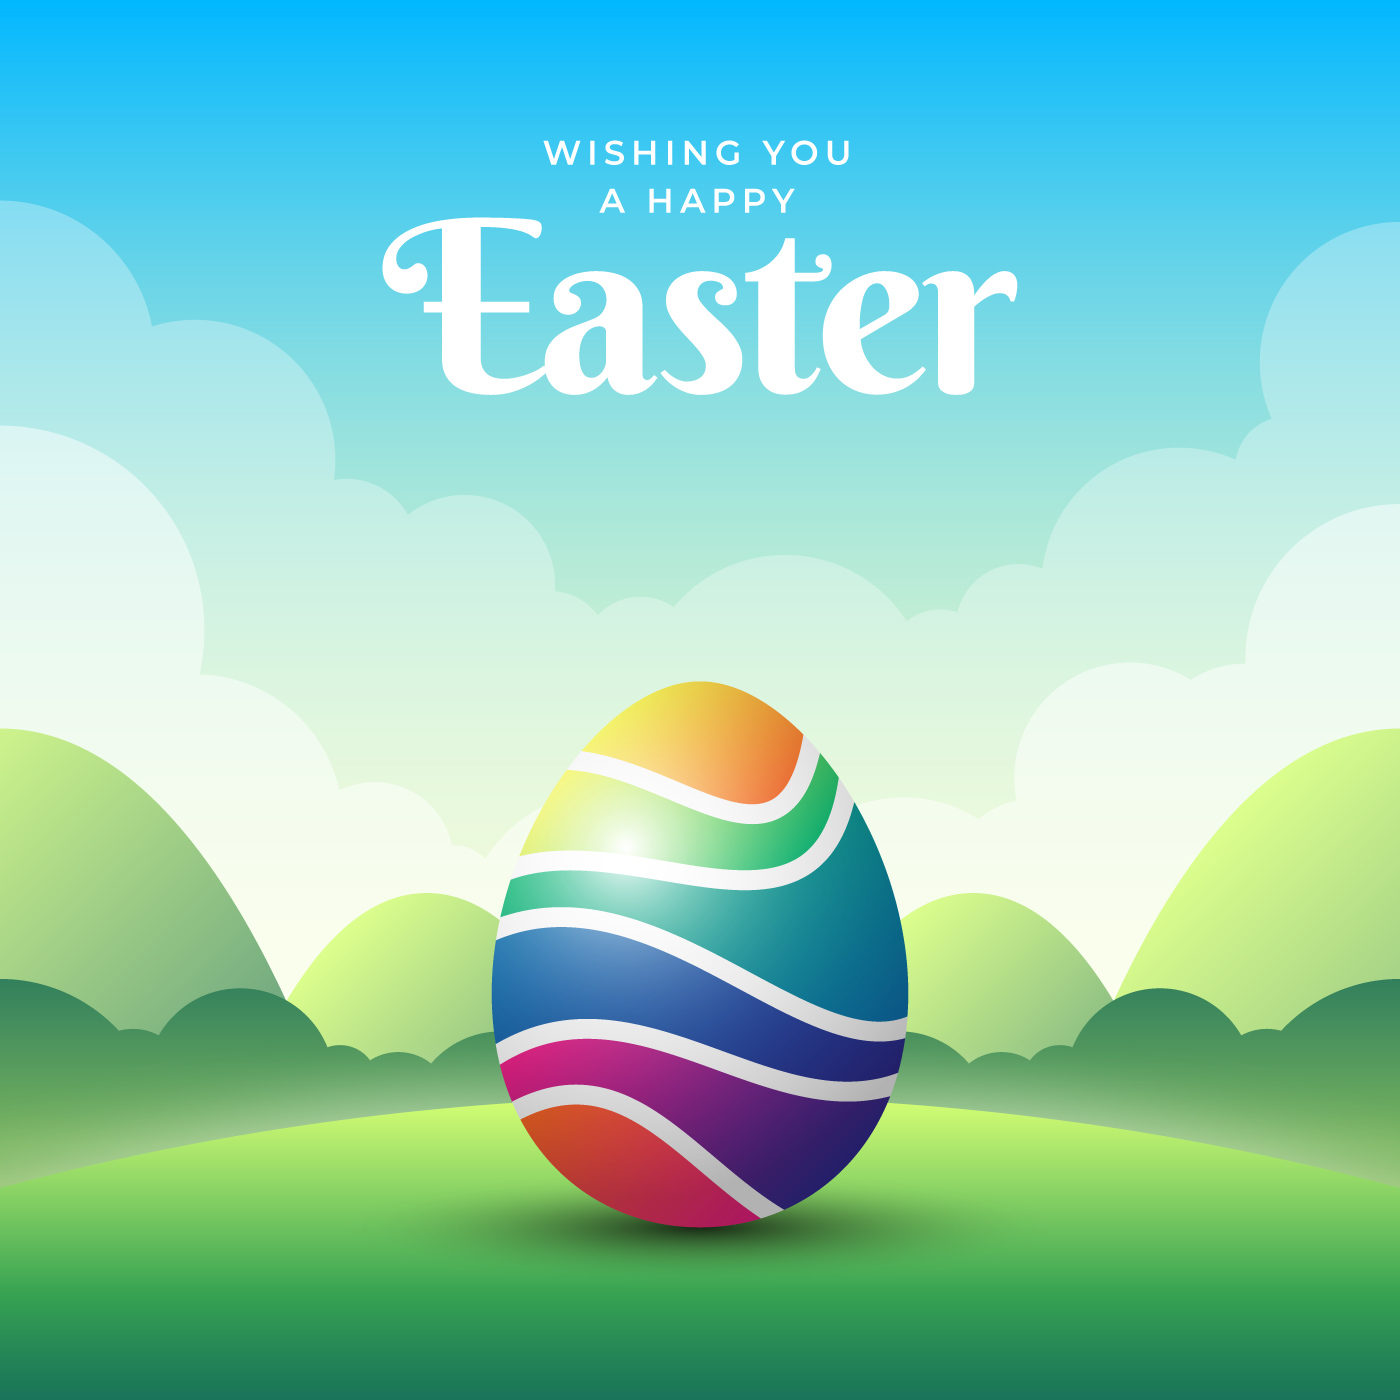 Colorful Template Design For Business Card: Happy Easter Design With Colorful Eggs Illustration 279758